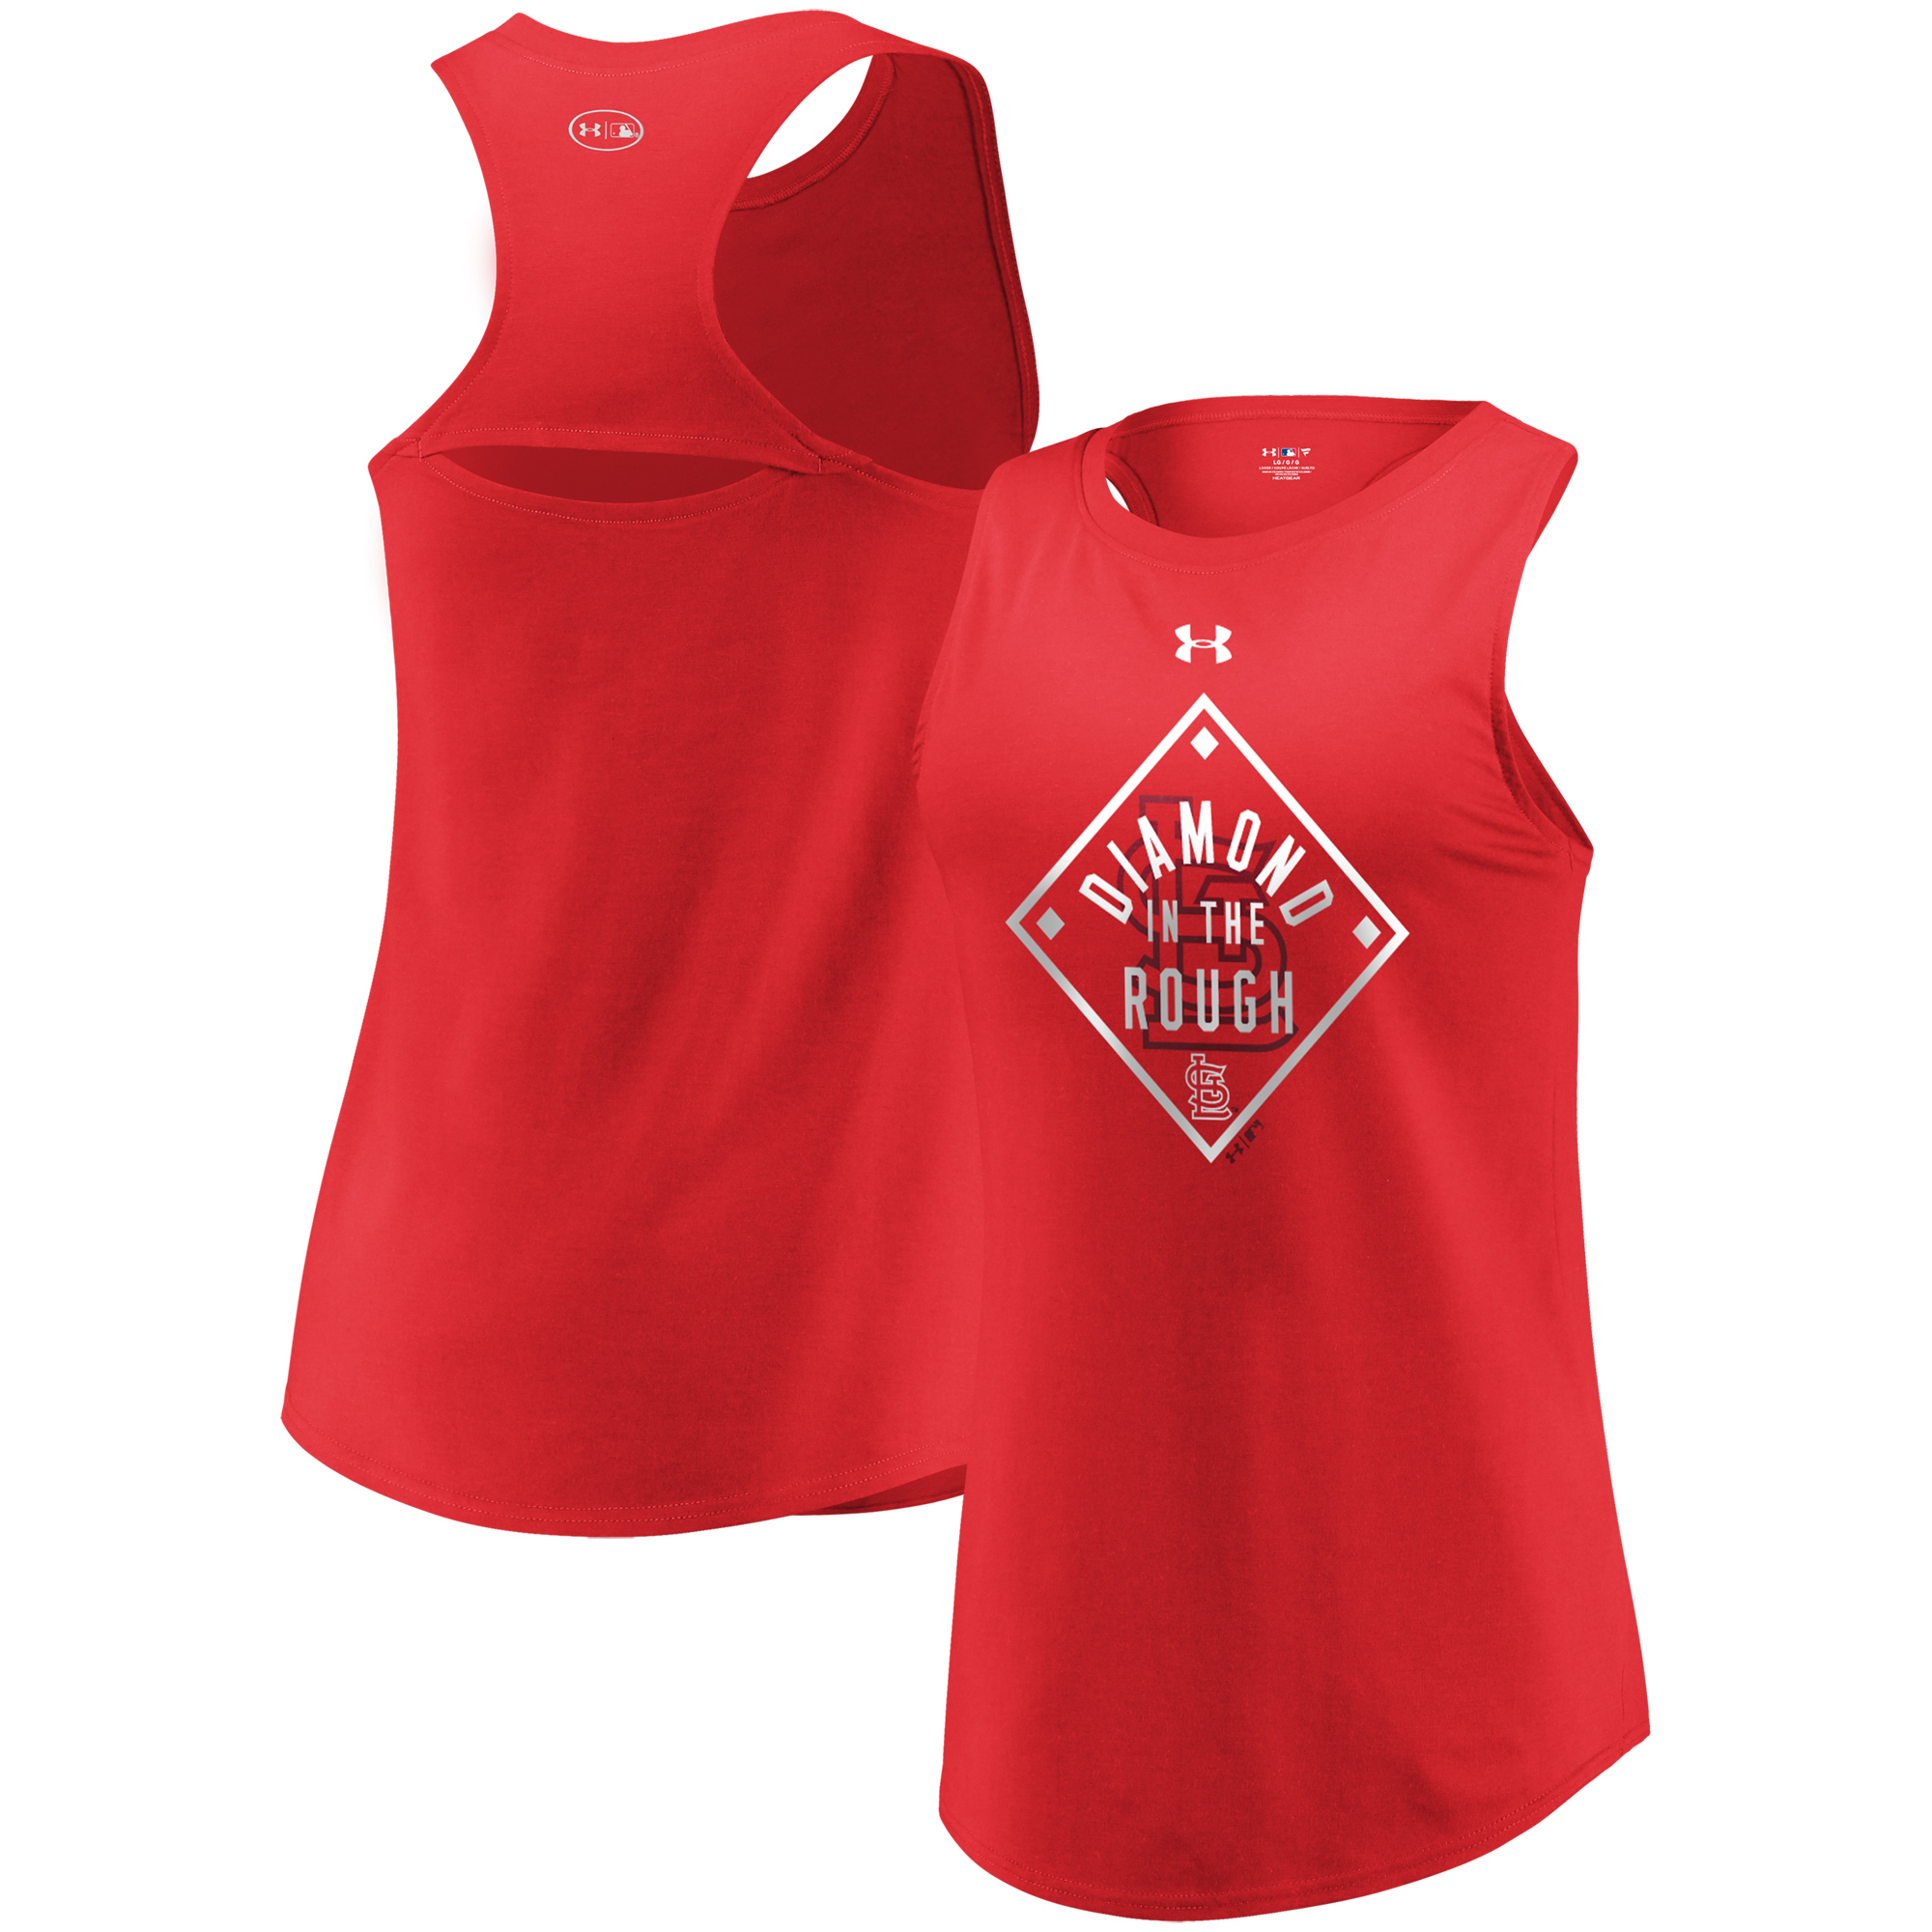 St. Louis Cardinals Under Armour Women's Passion Diamond Tri-Blend Performance Tank Top Red by MAJESTIC LSG